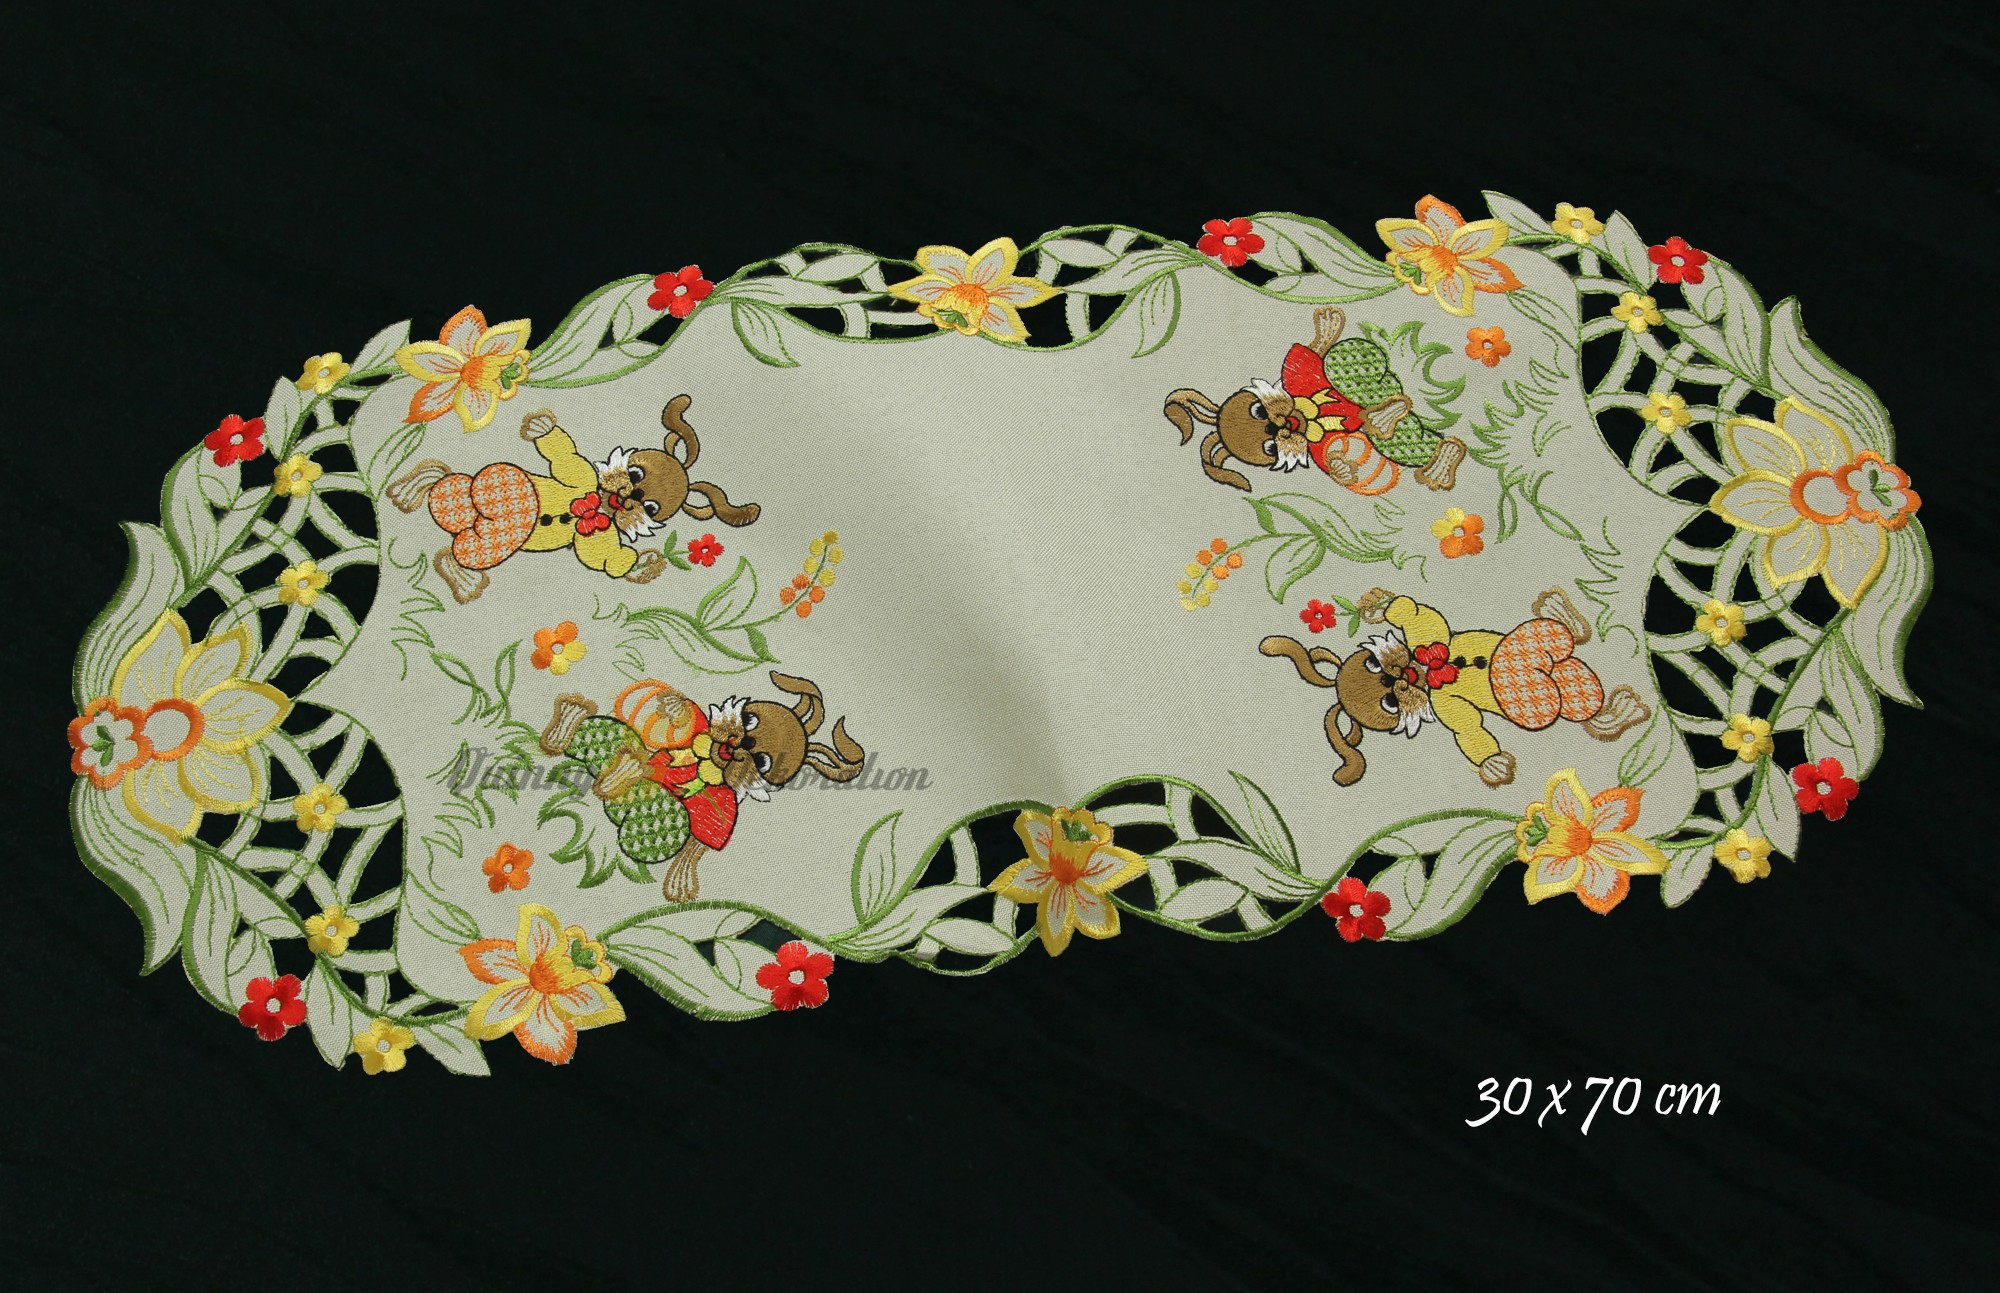 Easter Doily Table runner Tablecloth